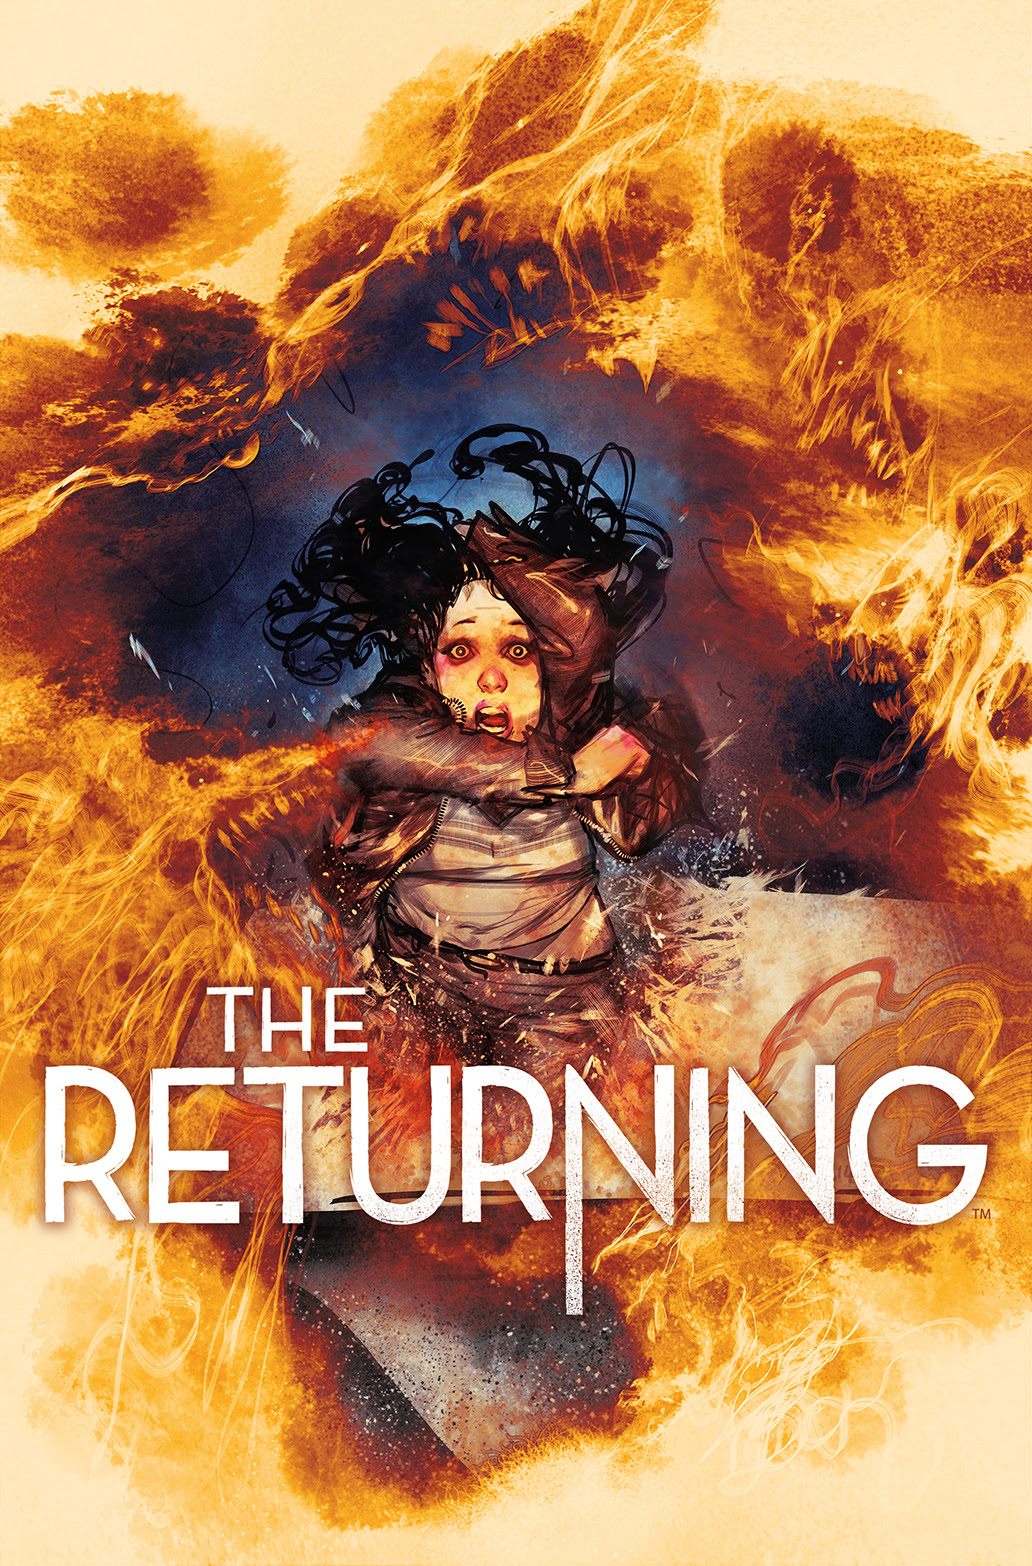 THE RETURNING #3 Cover by Frazer Irving